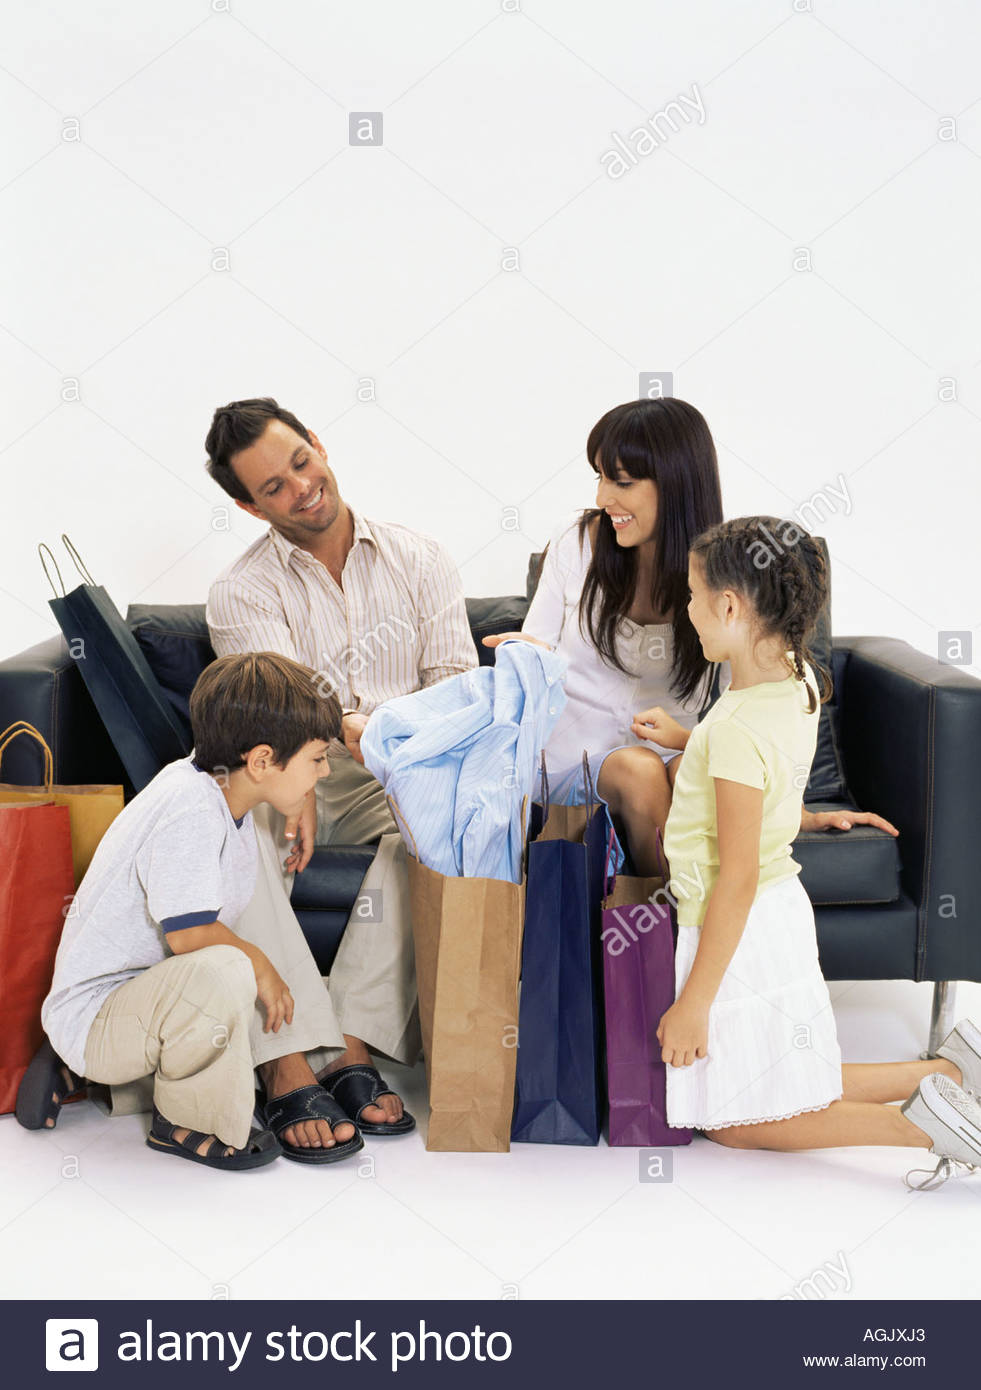 Family looking at clothes mother has bought Stock Photo